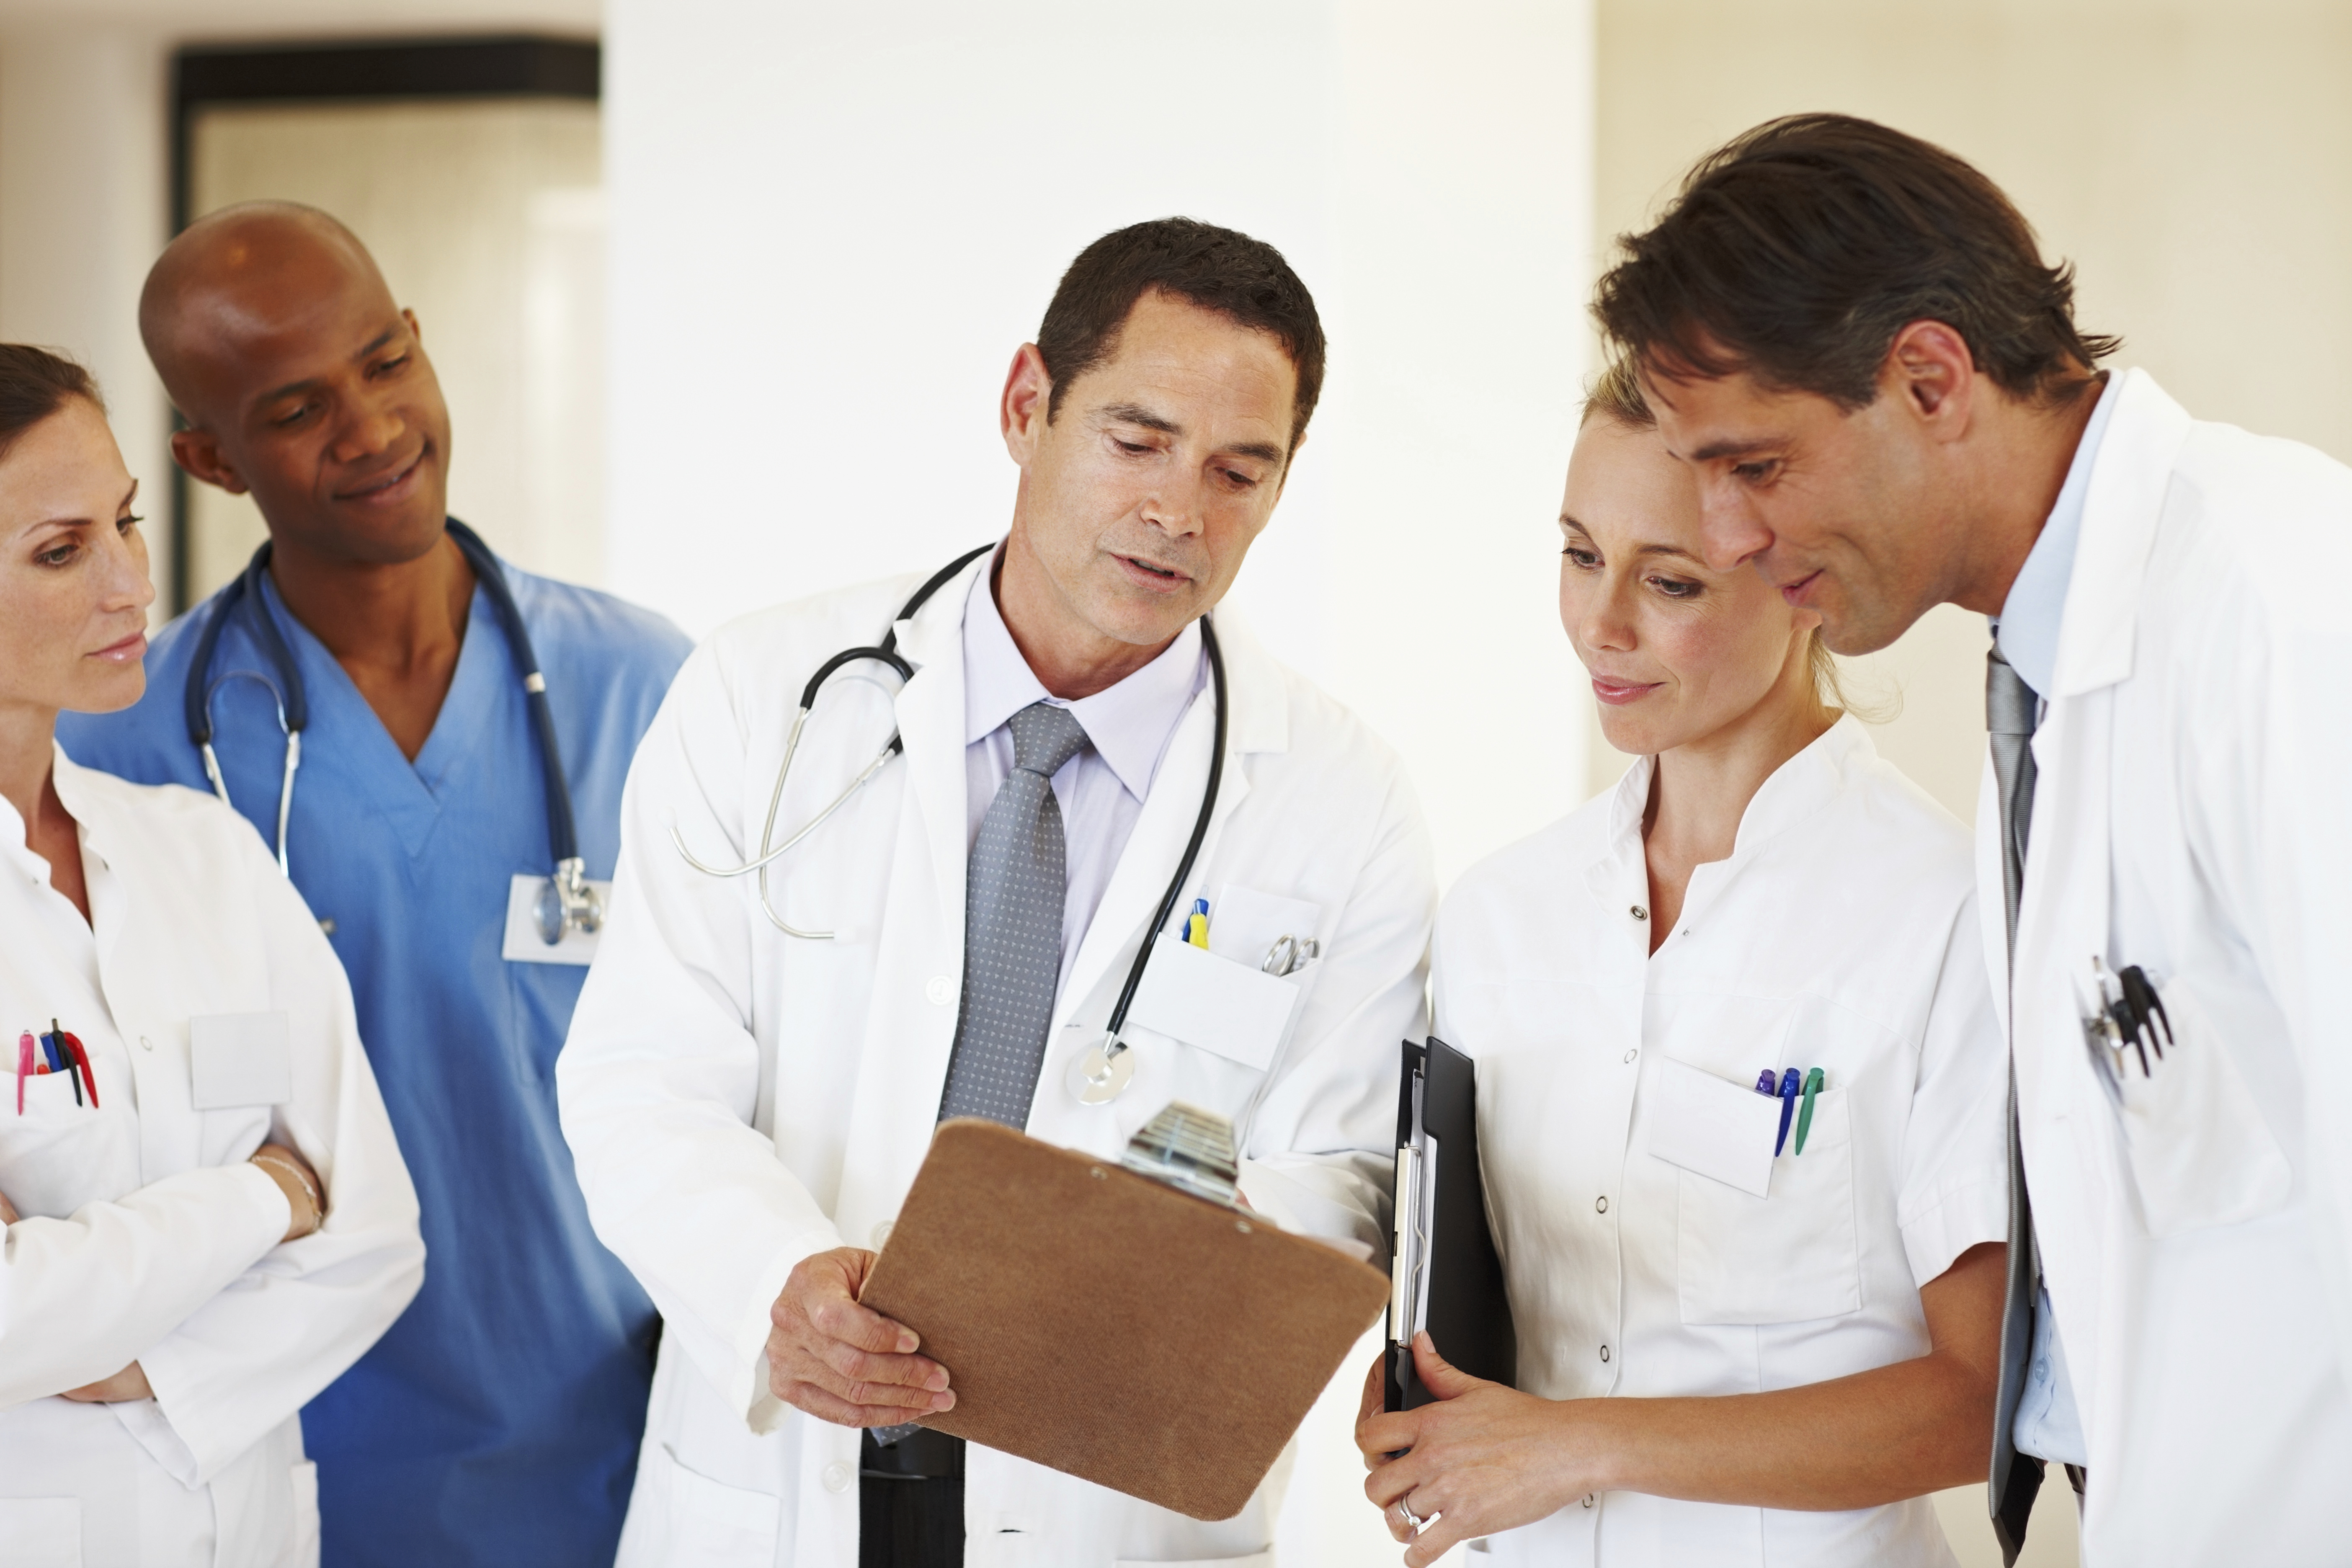 Physician Teamwork May Save Patient Lives Study Finds